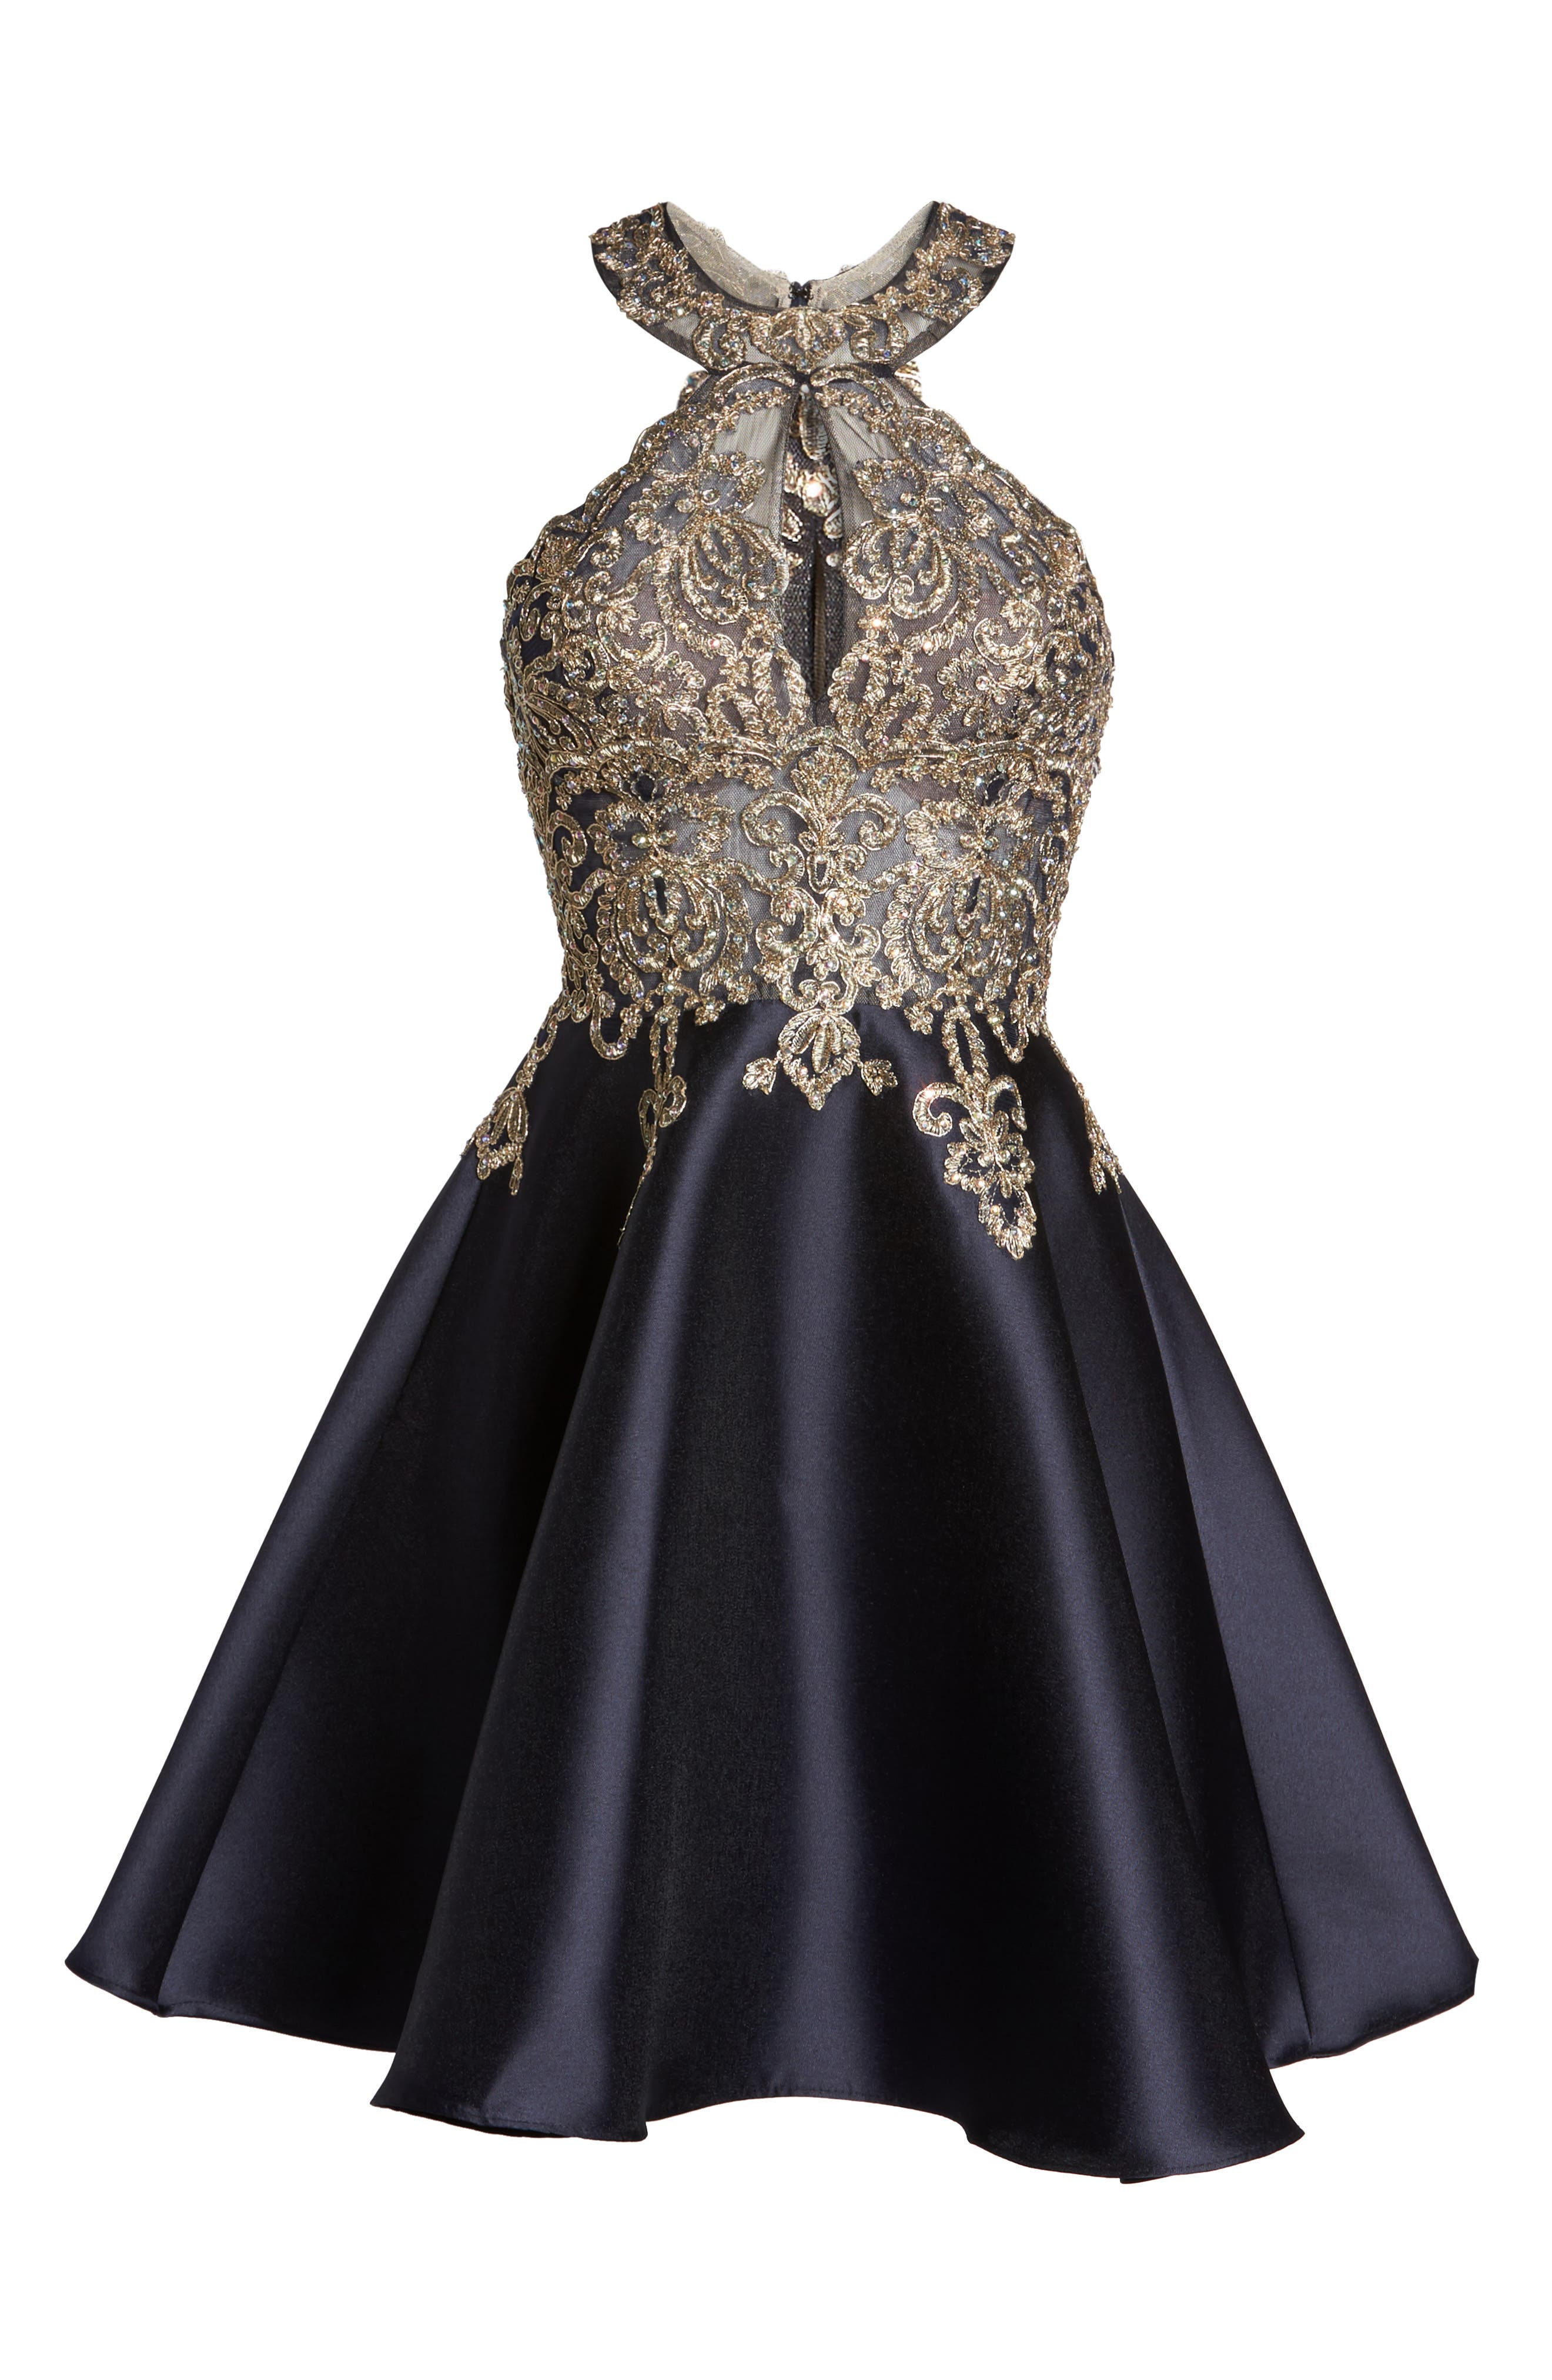 XSCAPE,                             Embellished Embroidered Mikado Party Dress,                             Alternate thumbnail 6, color,                             409